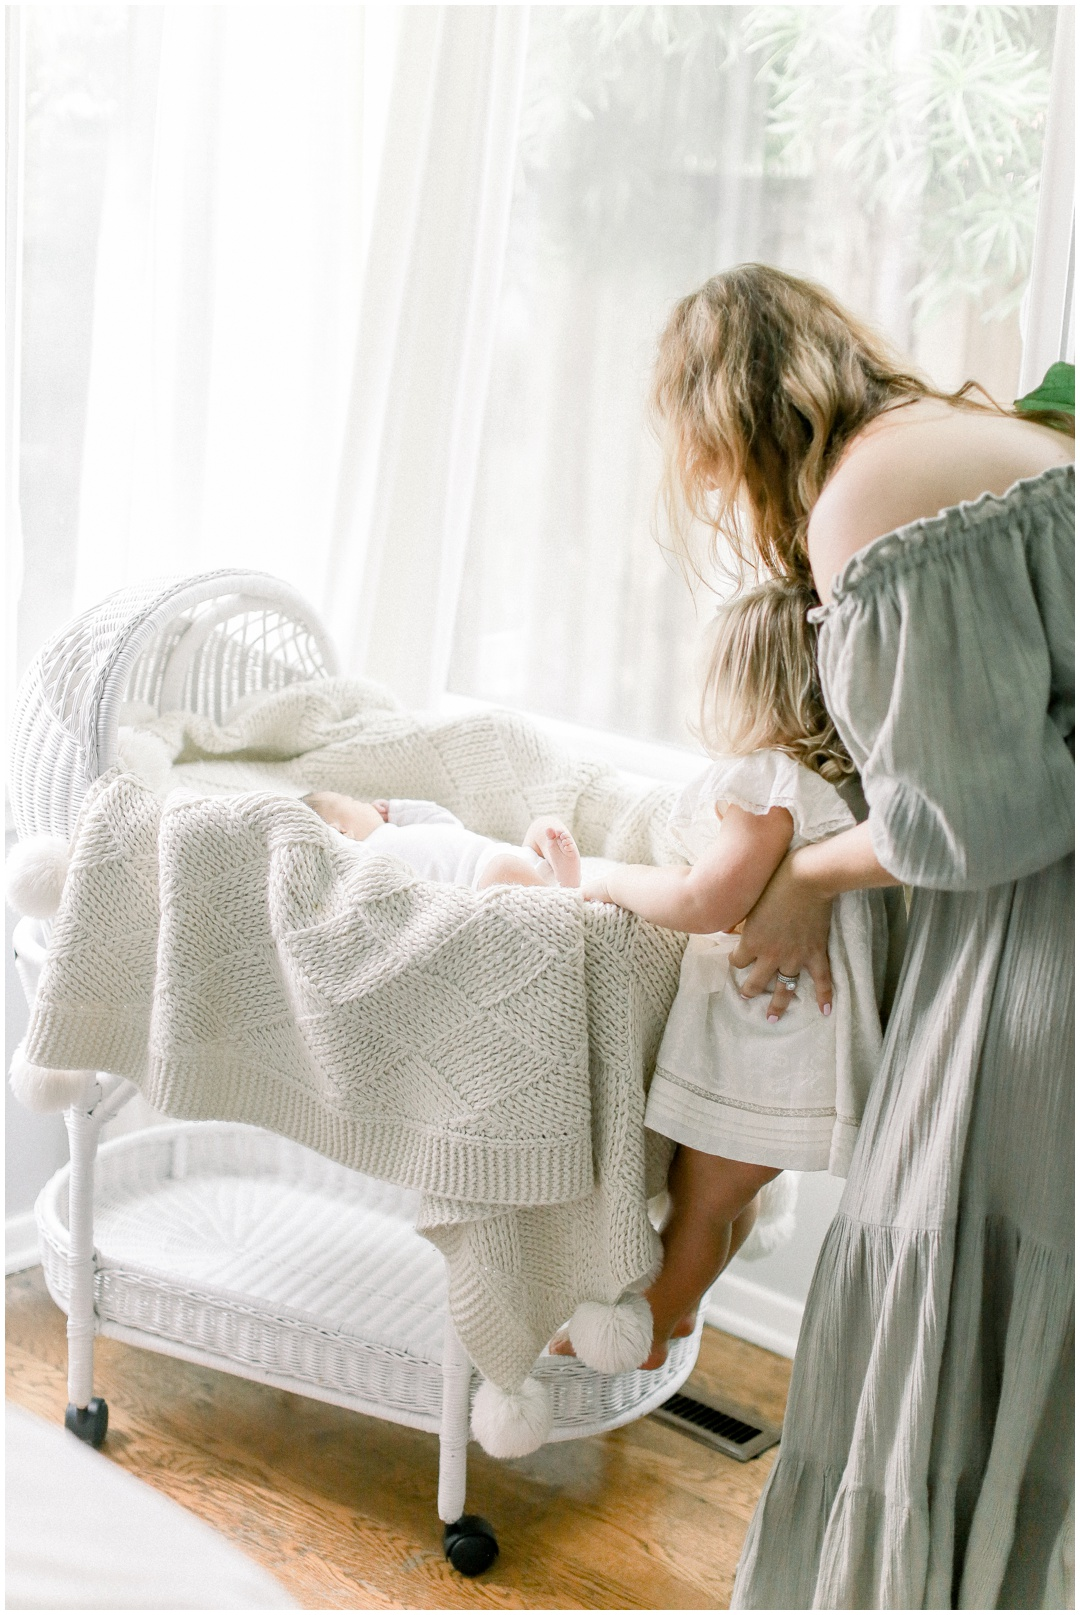 Newport_Beach_Newborn_Light_Airy_Natural_Photographer_Newport_Beach_Photographer_Orange_County_Family_Photographer_Cori_Kleckner_Photography_Newport_Beach_Photographer_Blaire_Baker_Brett_Baker_Caroline_Baker__3891.jpg